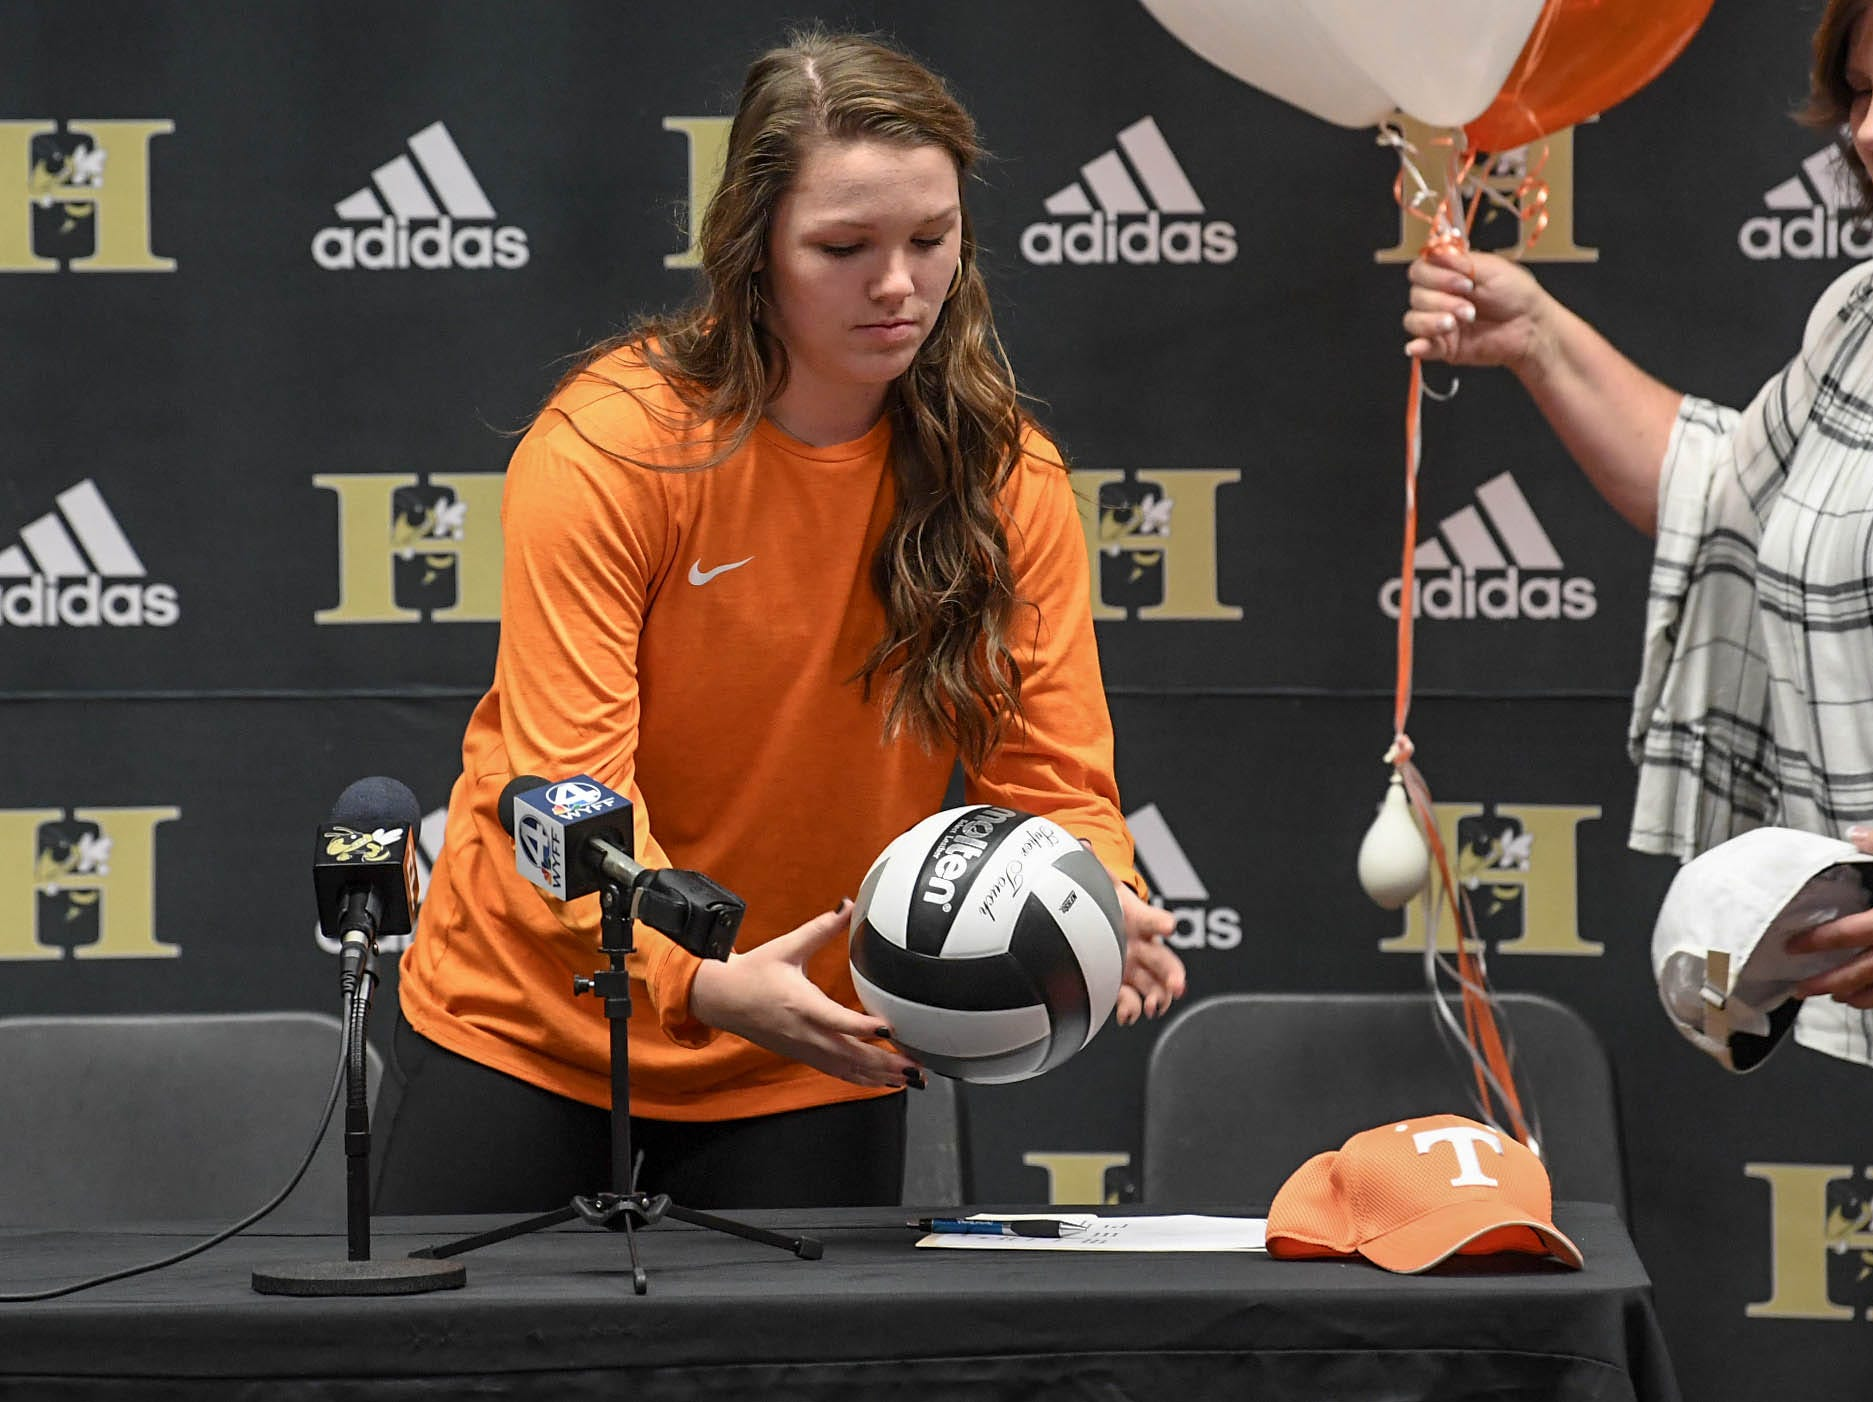 Maddie Bryant places a volleyball and Tennessee as props during a National Signing Day event at T.L. Hanna High School in Anderson on Wednesday. Bryant, All-Region Class AAAAA volleyball player for the Yellow Jackets signed with Tennessee.